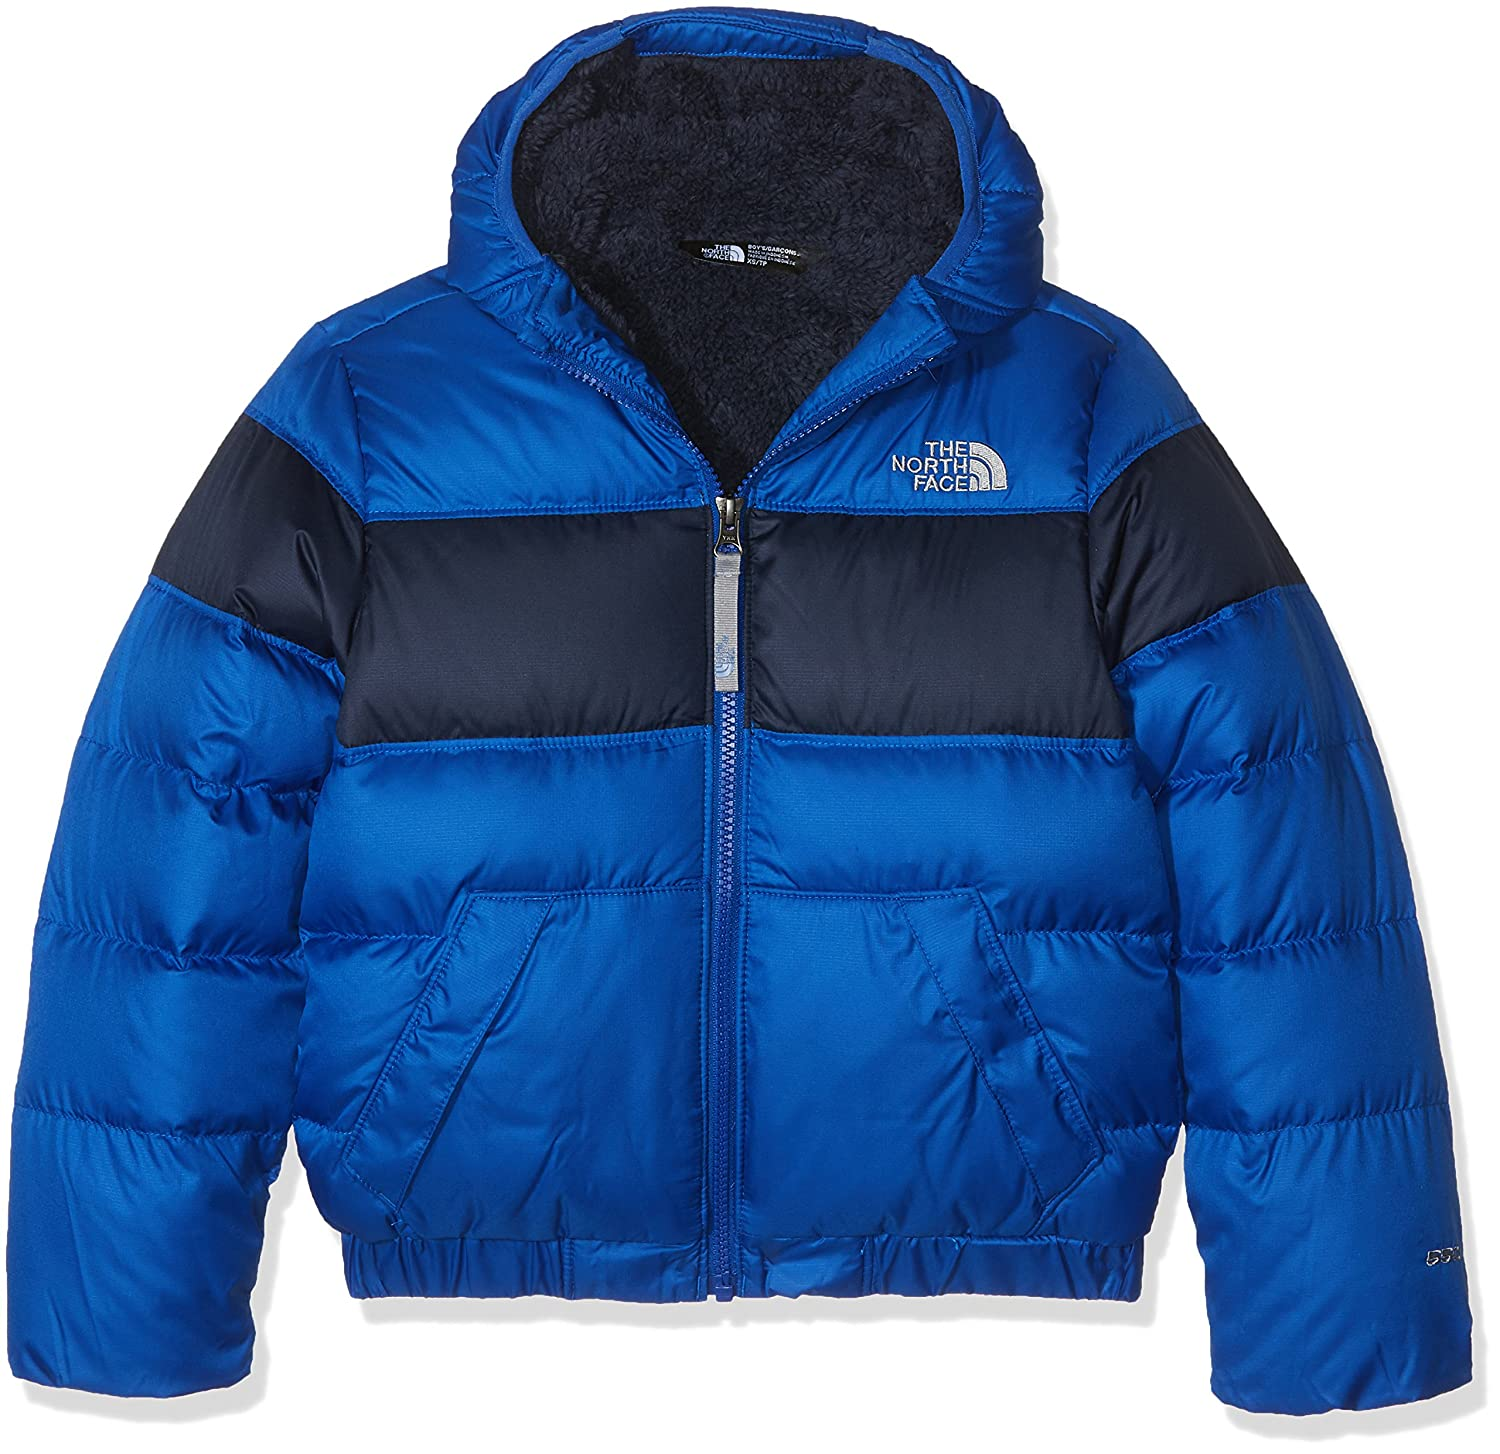 THE NORTH FACE Moondoggy 2.0 – Chaqueta con Capucha para niño